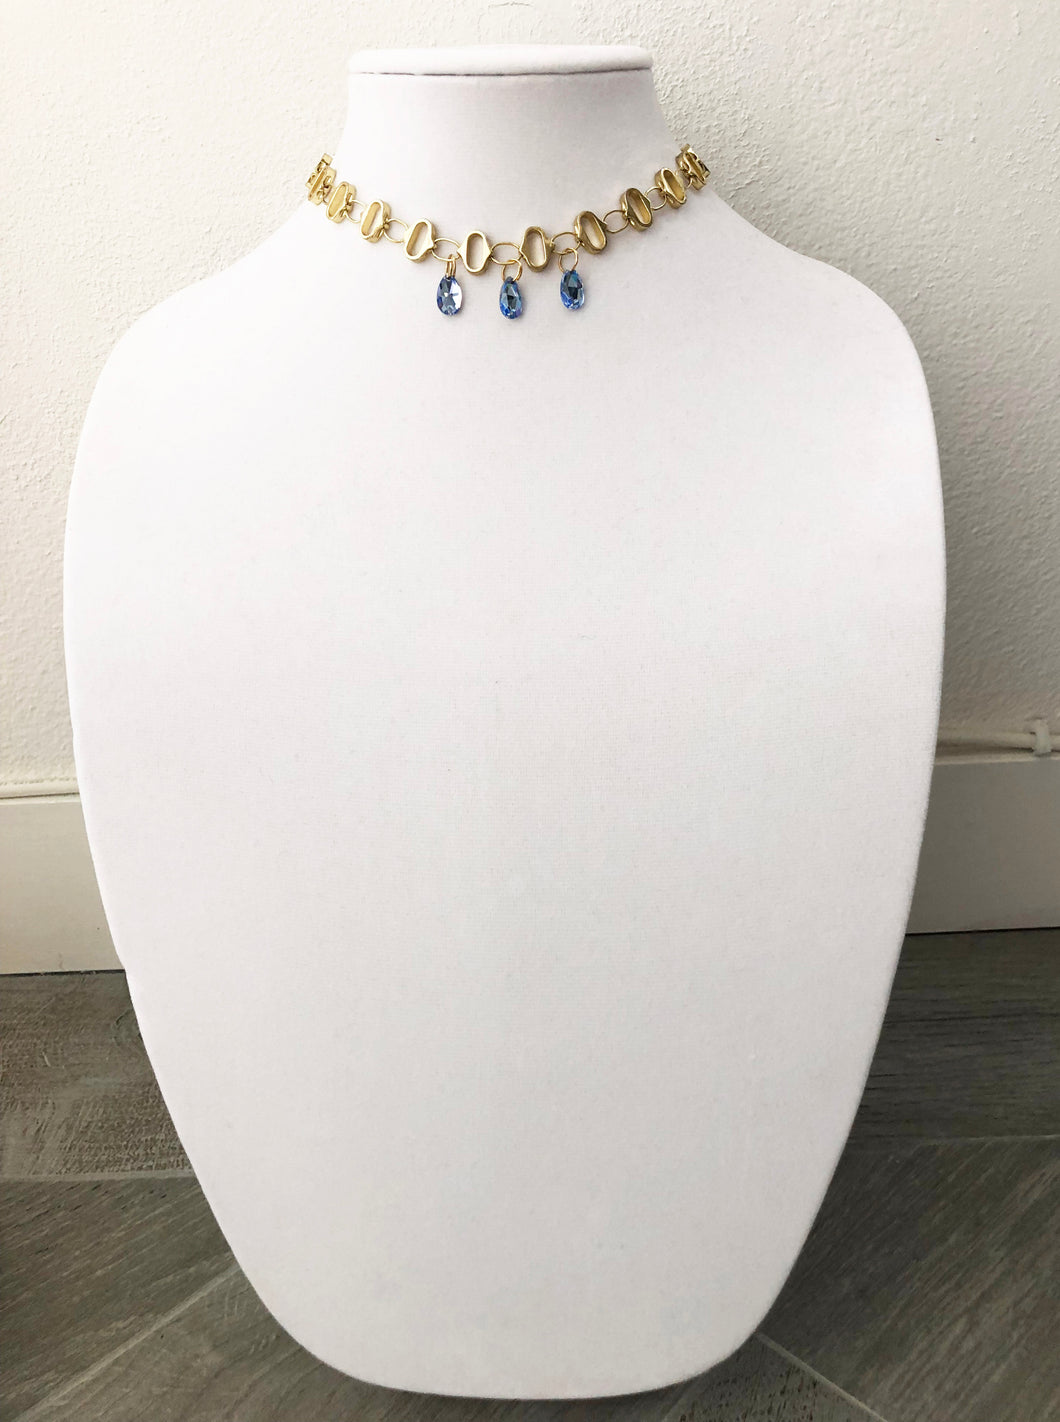 gold plated chain with swarovski stones - 14.5